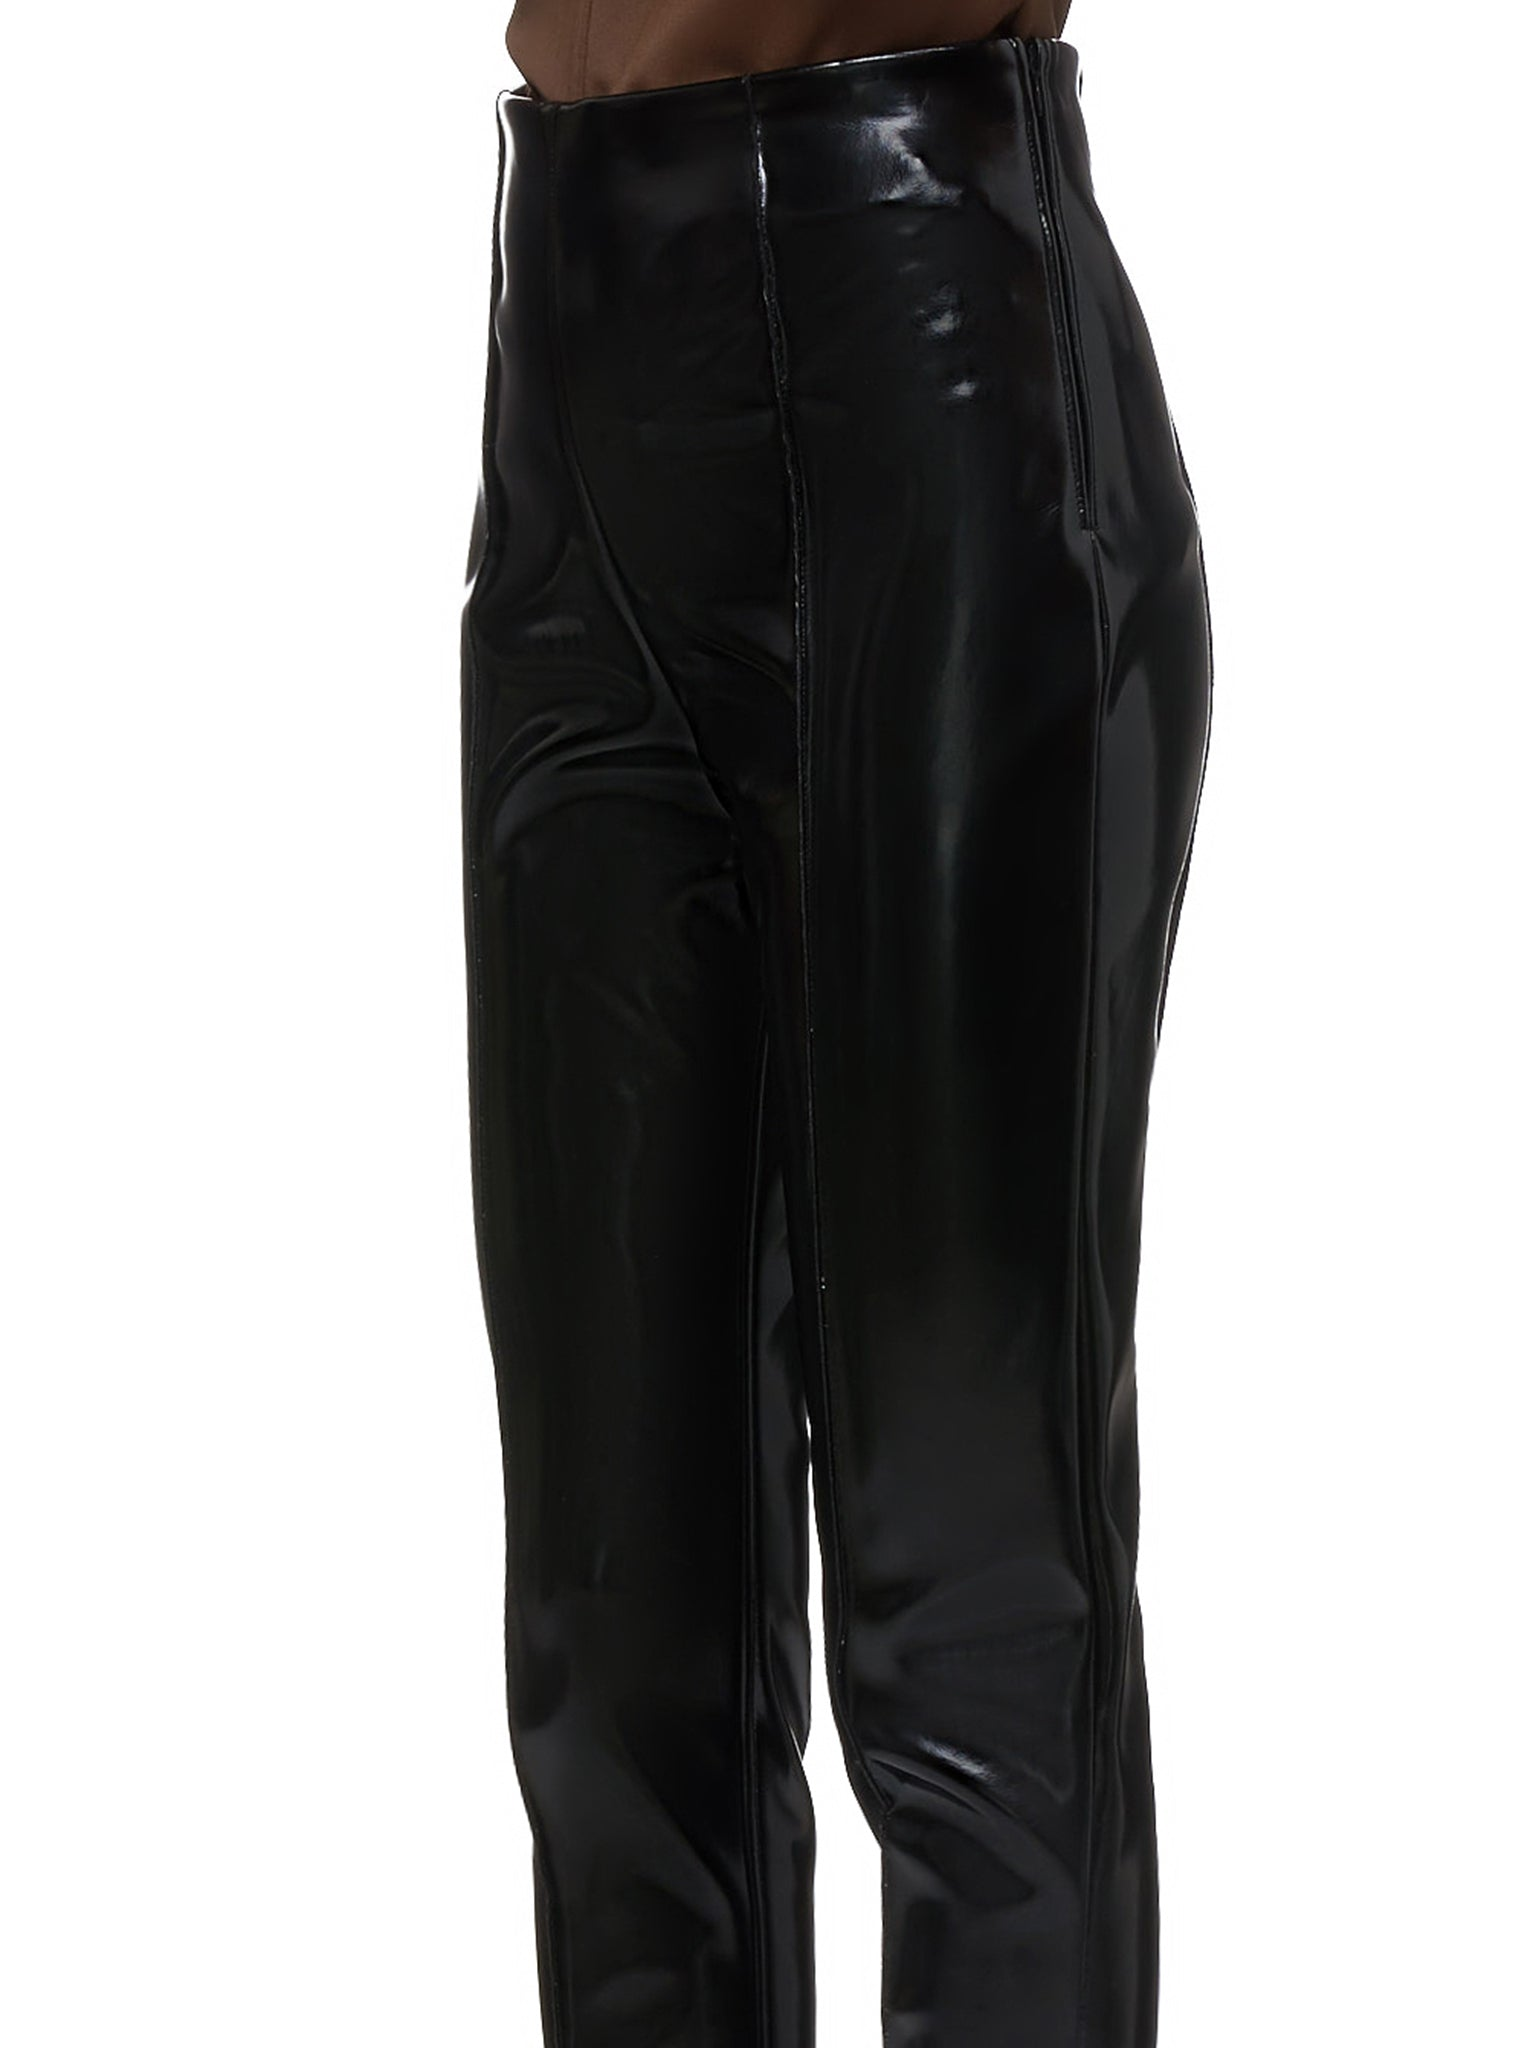 Kwaidan Editions Pants - Hlorenzo Detail 1